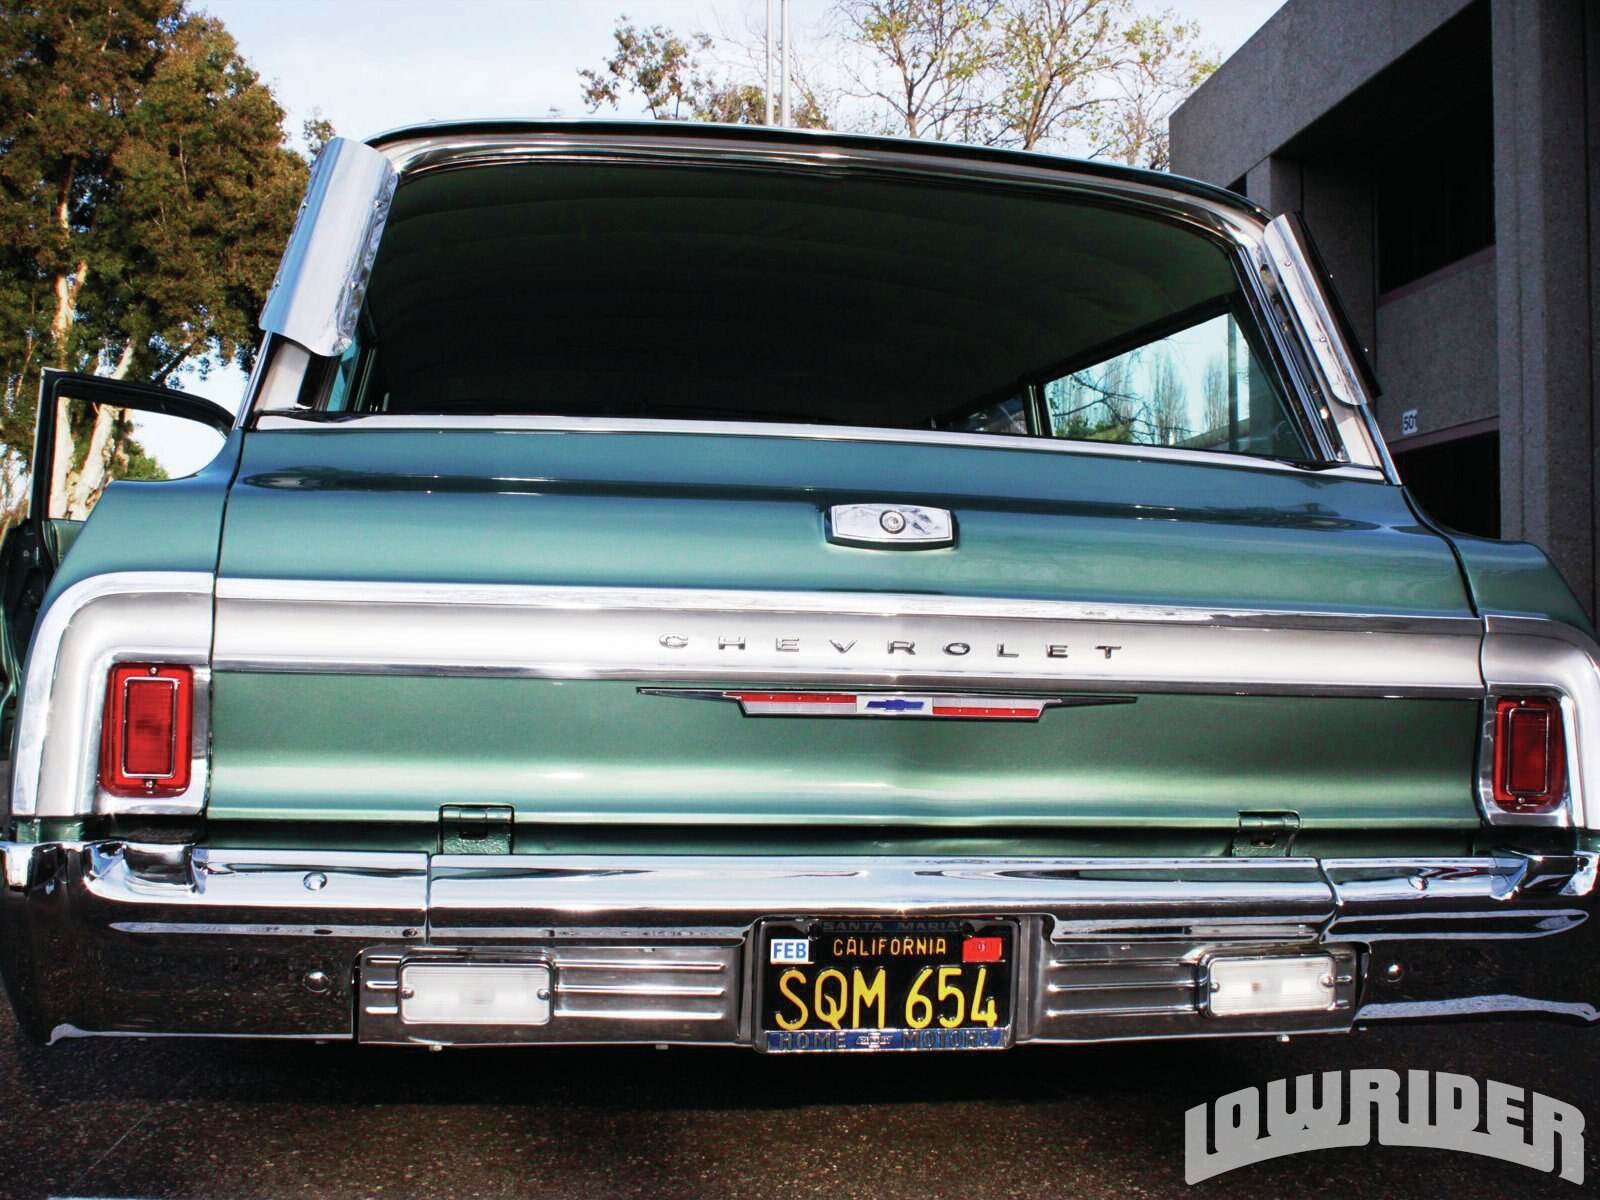 lrmp-1108-02-z-1064-chevrolet-impala-wagon-rear-view2